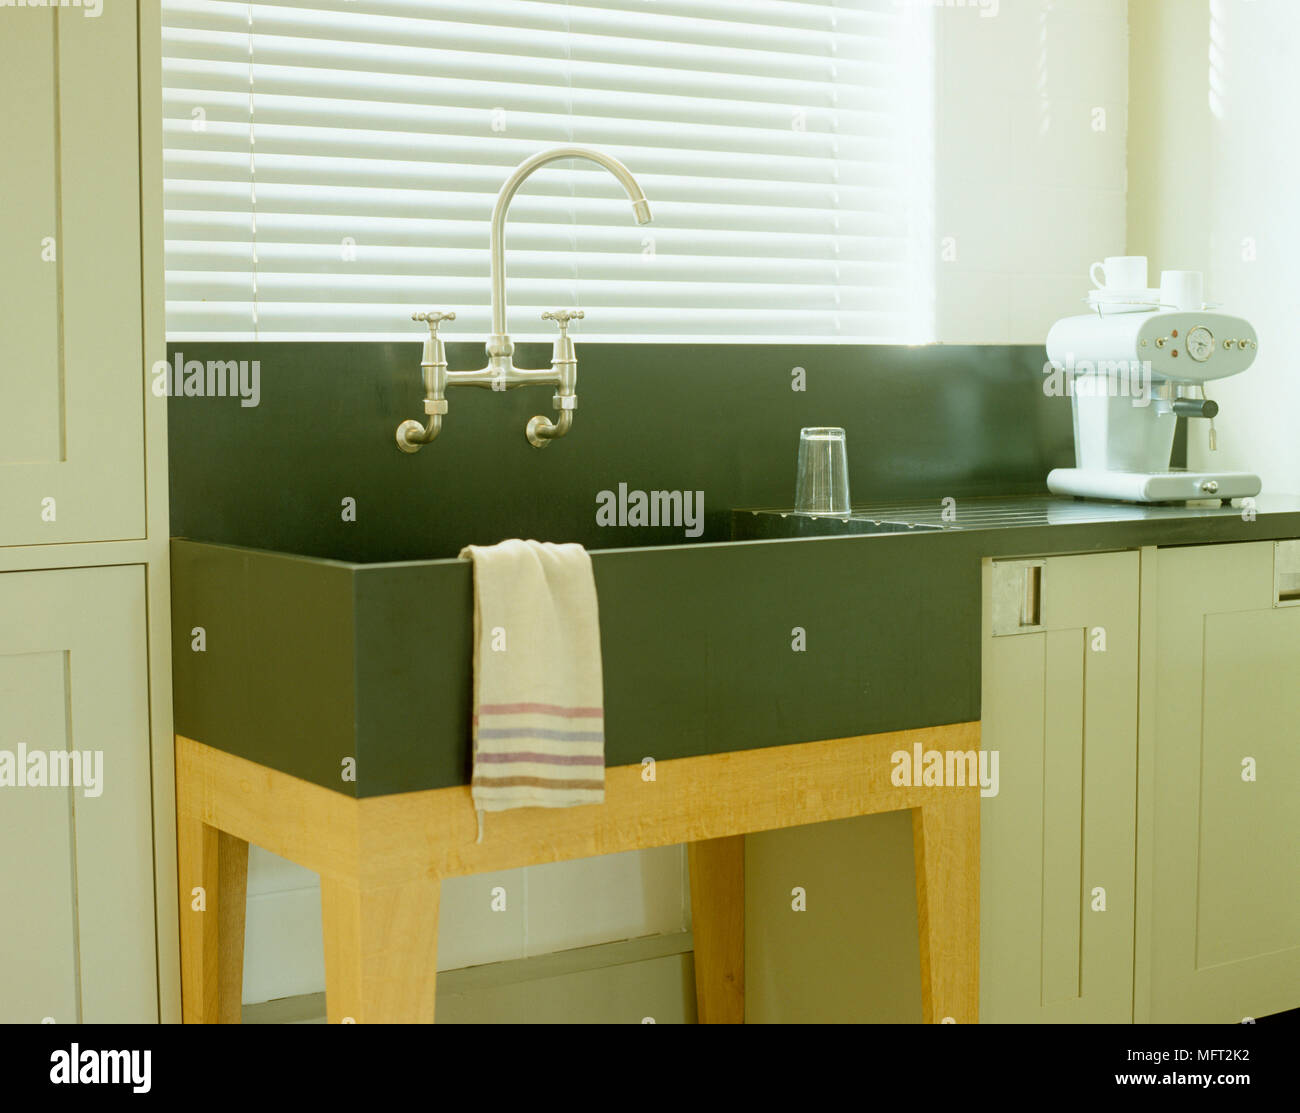 https www alamy com butler sink on wooden legs in kitchen with light green units image181852470 html